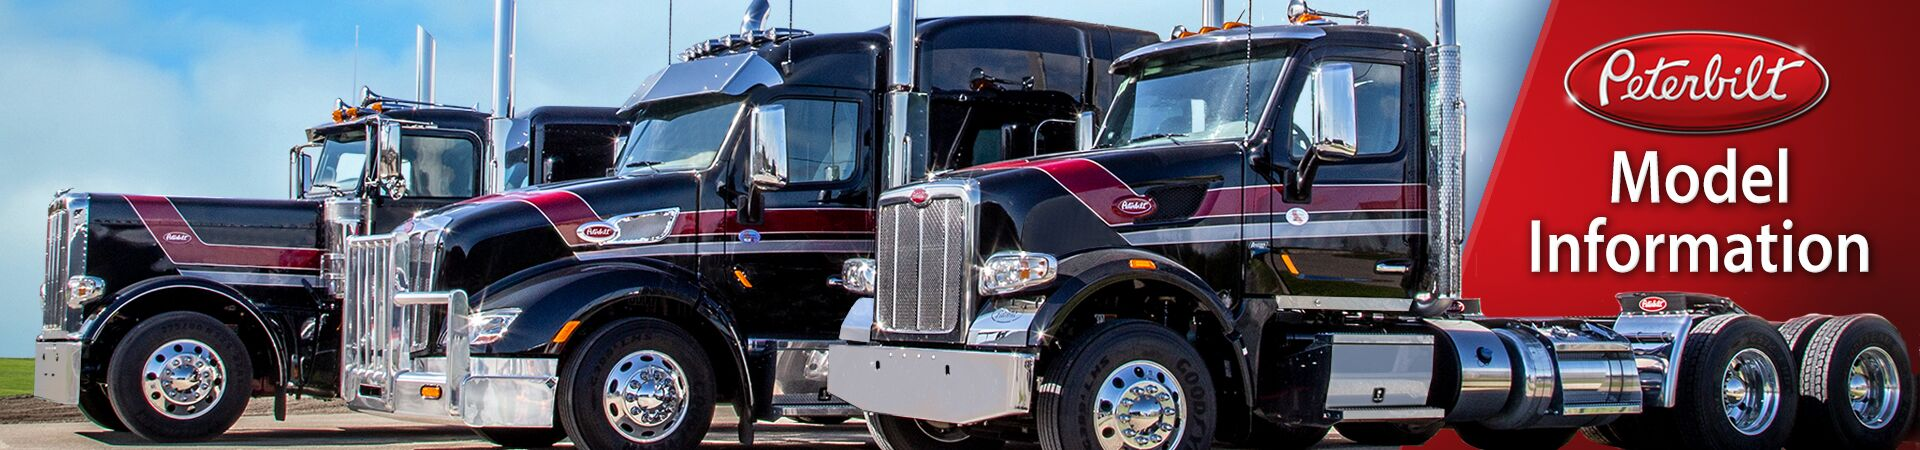 hight resolution of peterbilt models